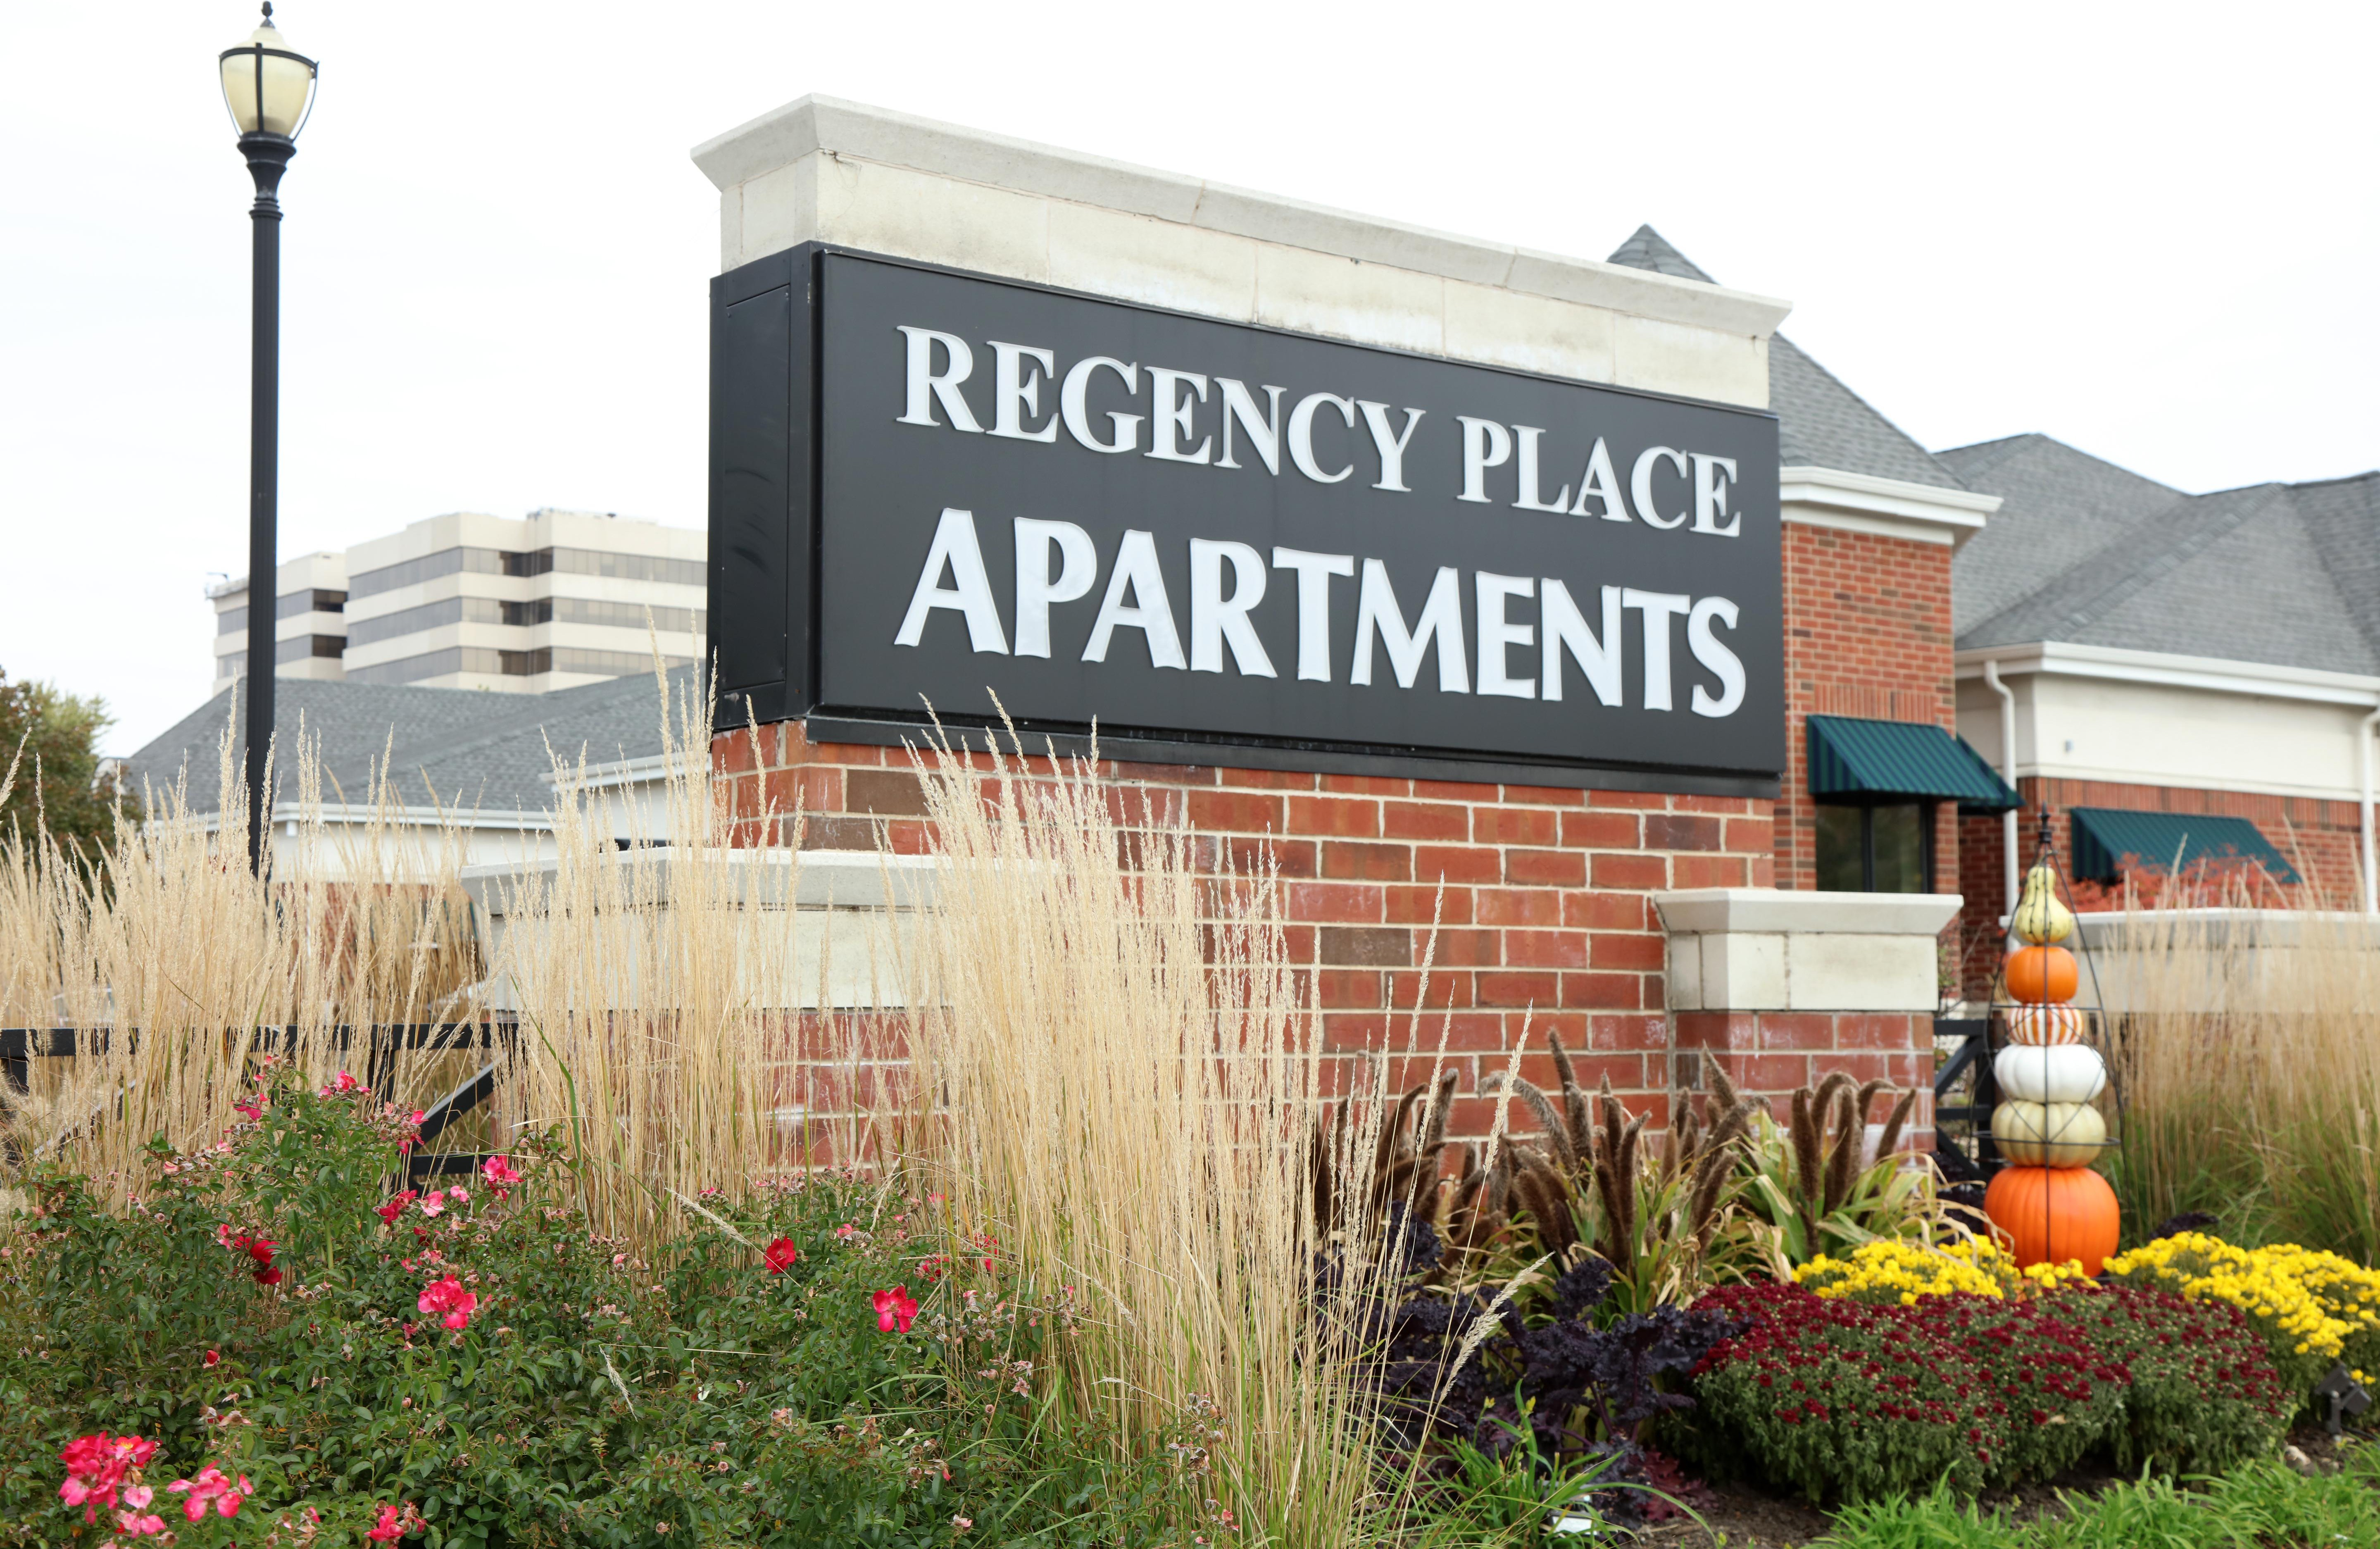 Apartments Near Lisle Regency Place for Lisle, Illinois Students in Lisle, IL